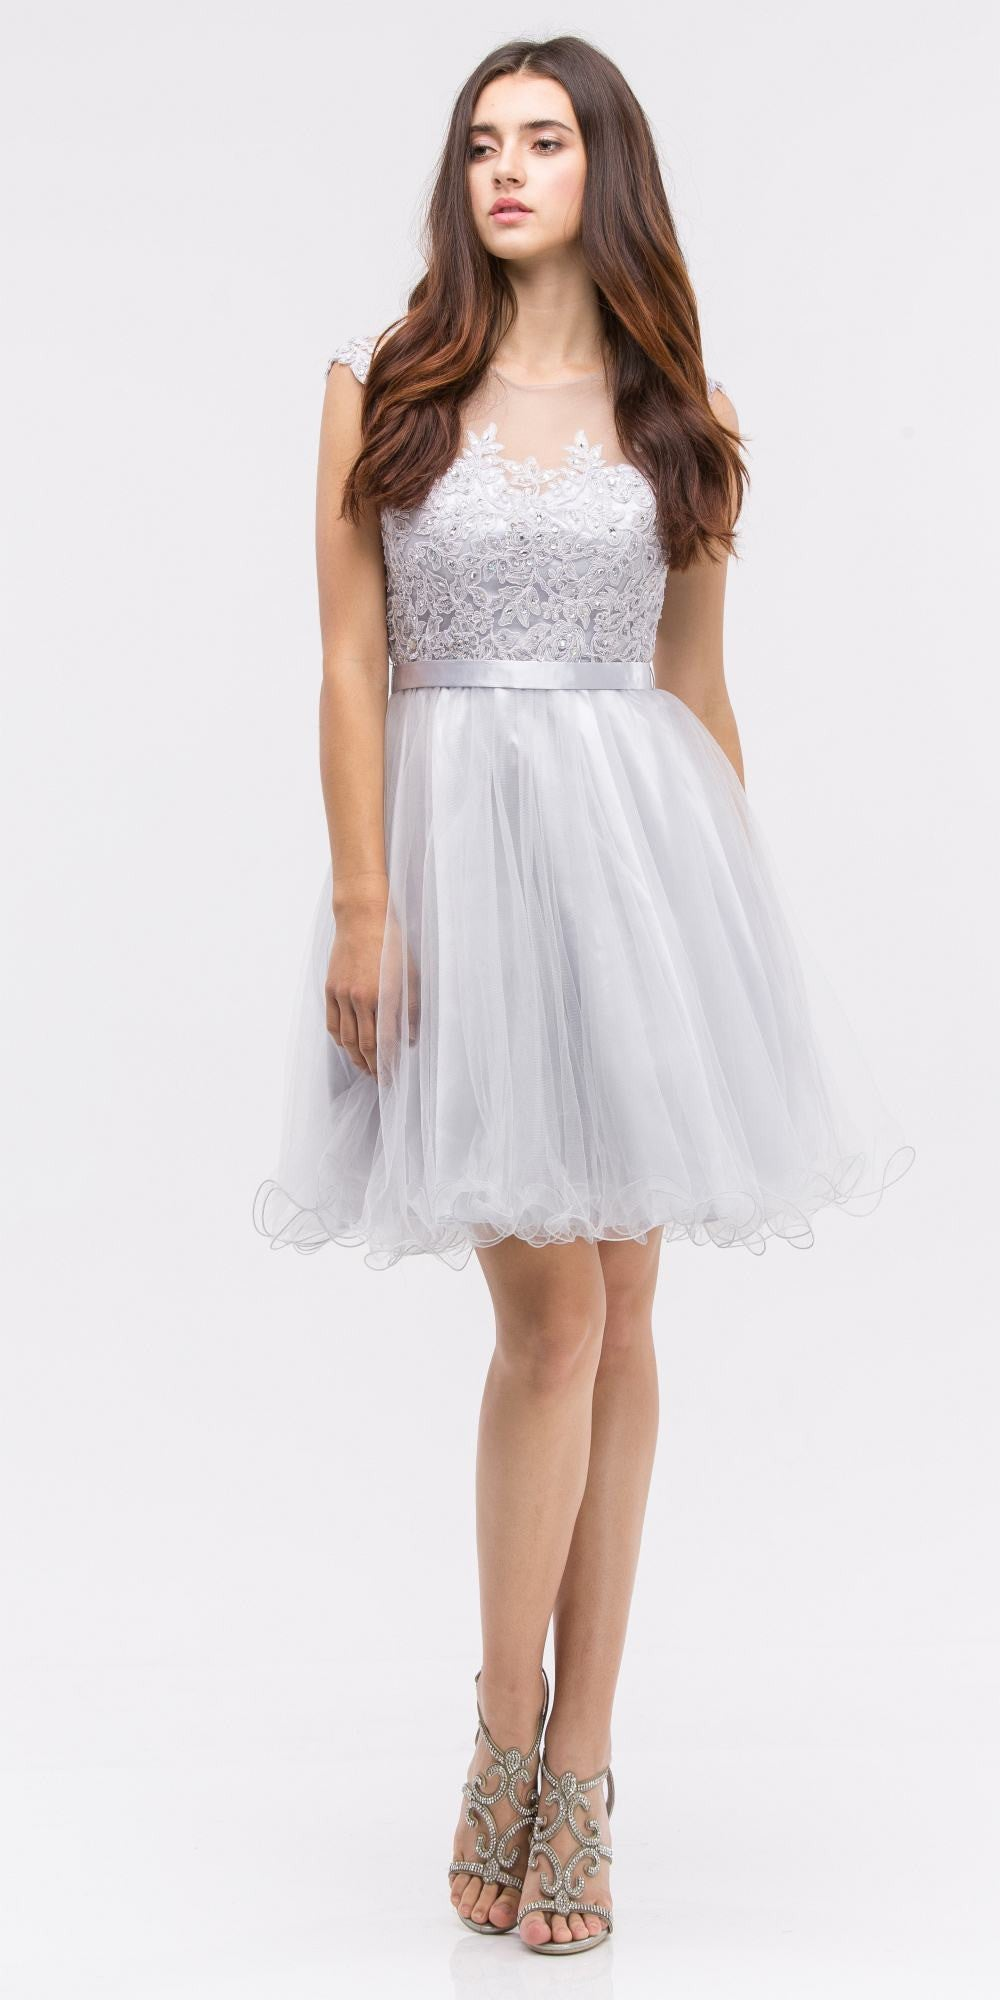 Silver Cap Sleeve Lace Applique Bodice Homecoming Dress Short